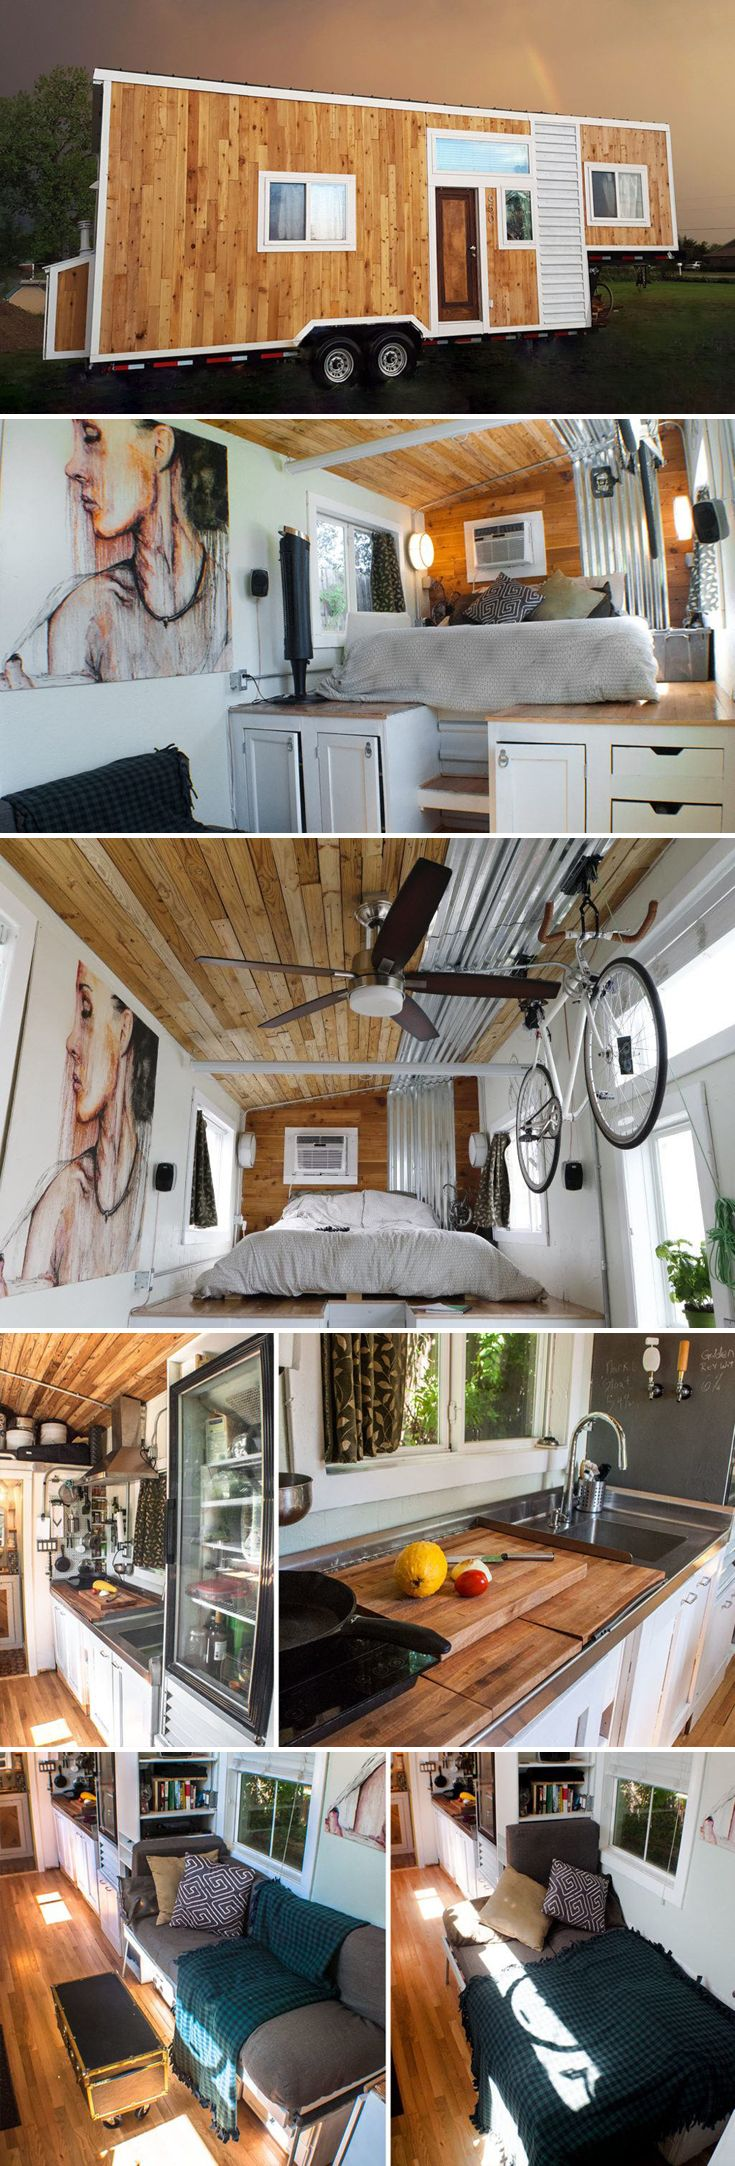 "Terraform One is a 32' gooseneck tiny house with a full size kitchen, a 110"" projector theater, two beer draft lines, and space for three bikes."